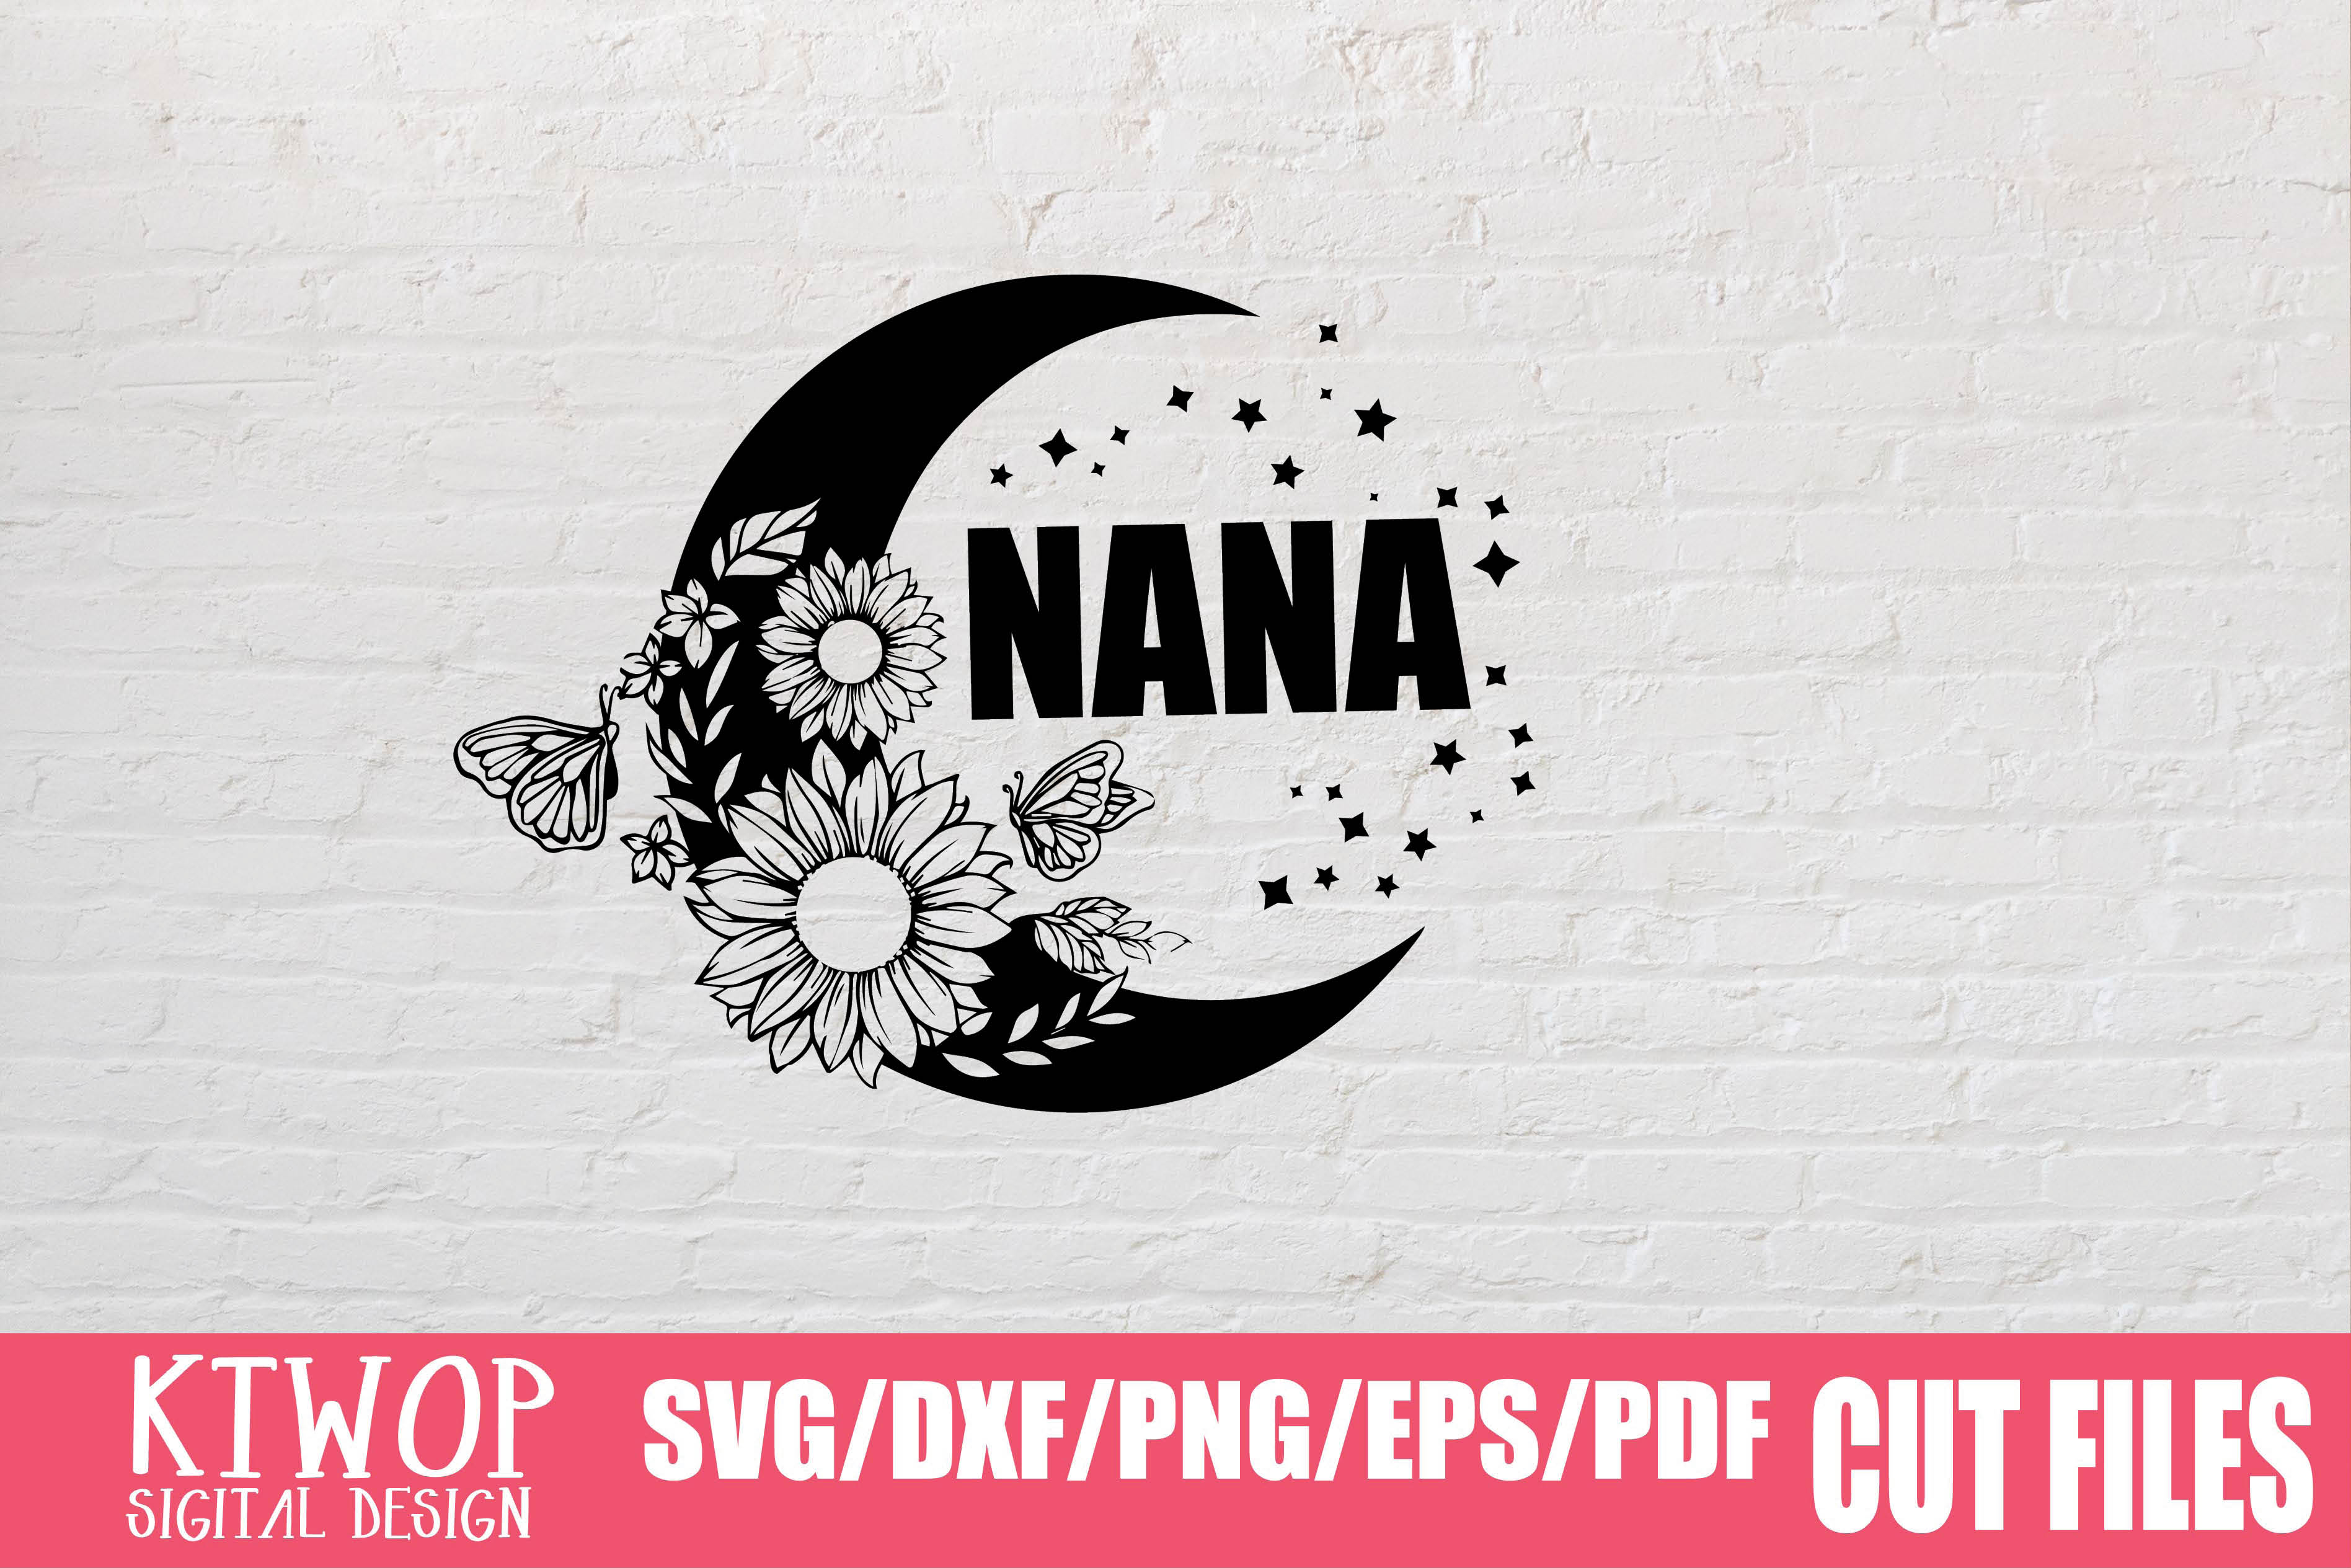 Download Free Nana Graphic By Ktwop Creative Fabrica for Cricut Explore, Silhouette and other cutting machines.